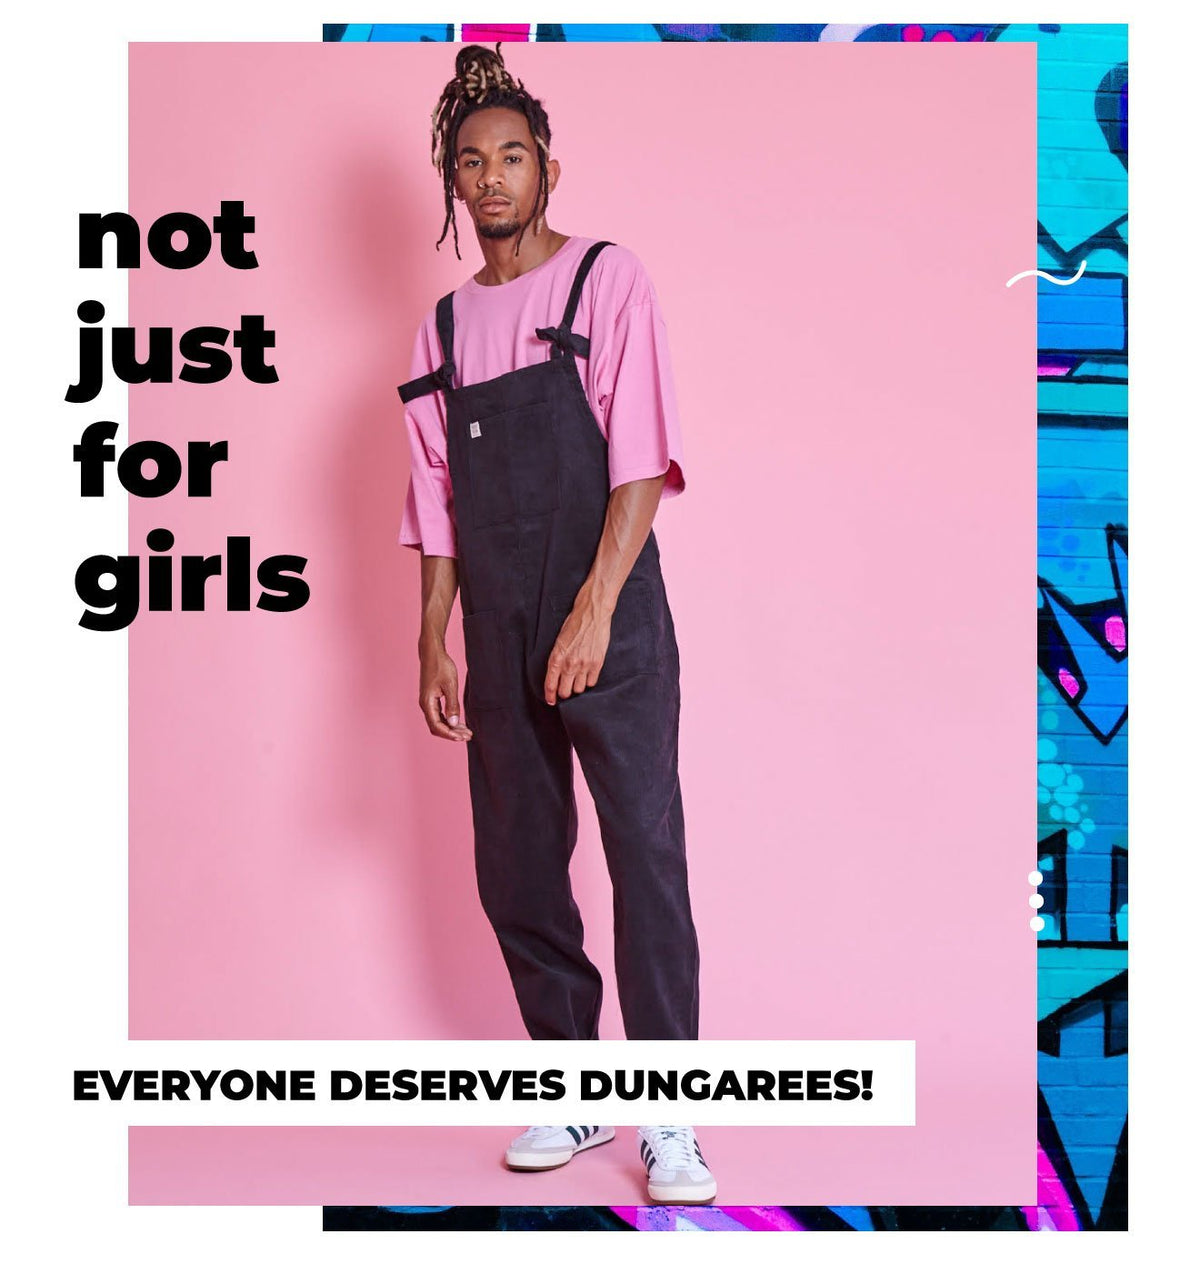 Everyone deserves dungarees!